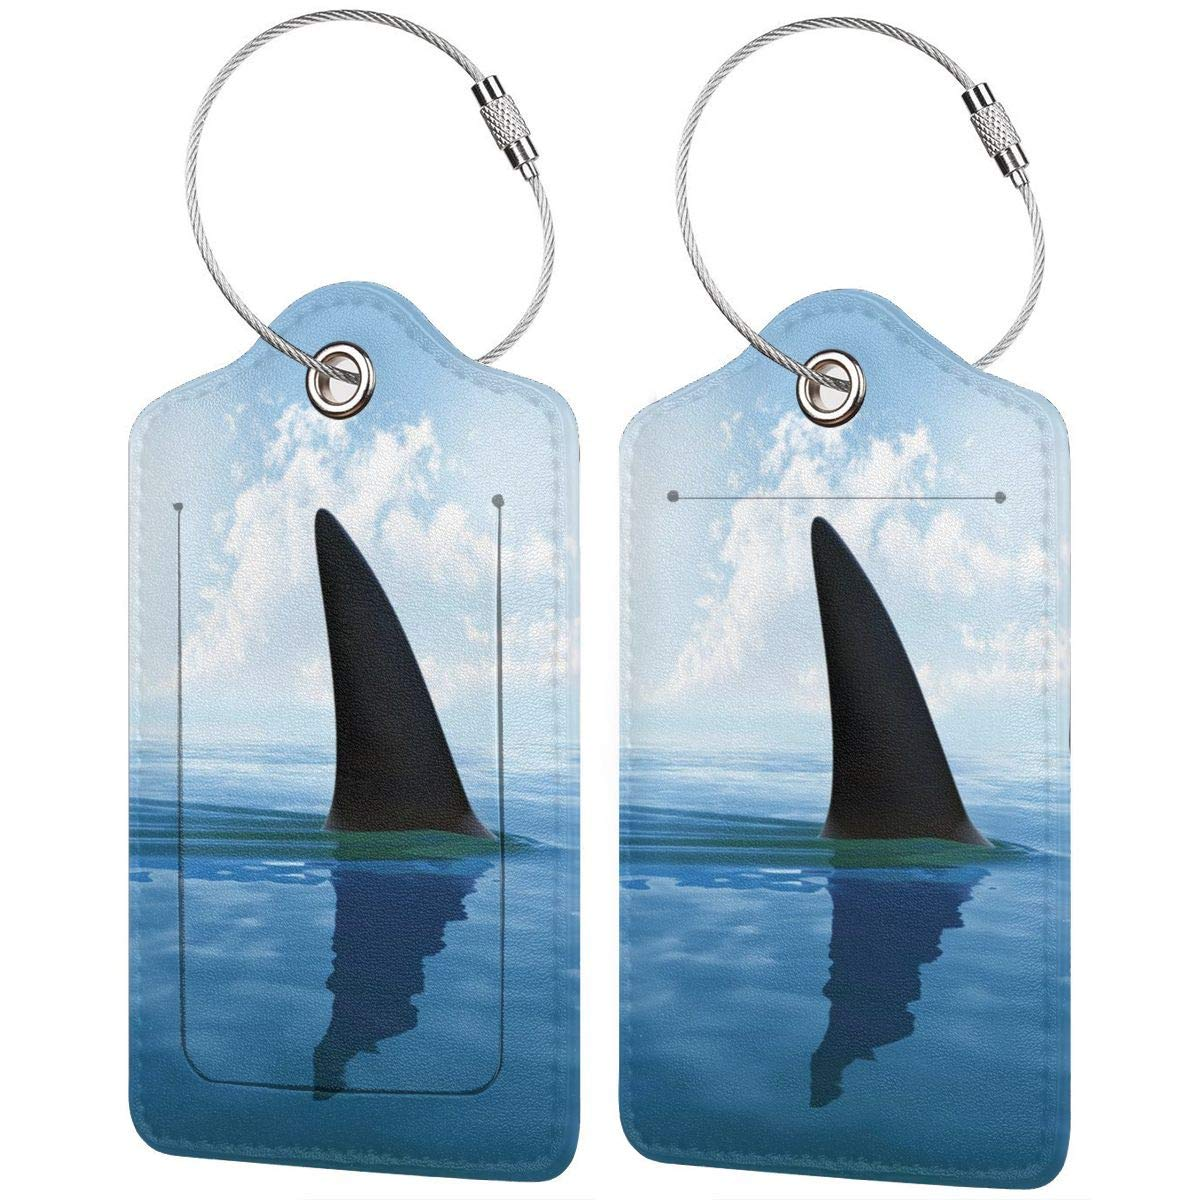 Leather Luggage Tag Shark Fish Fin Over The Sea Surface Luggage Tags For Suitcase Travel Lover Gifts For Men Women 2 PCS